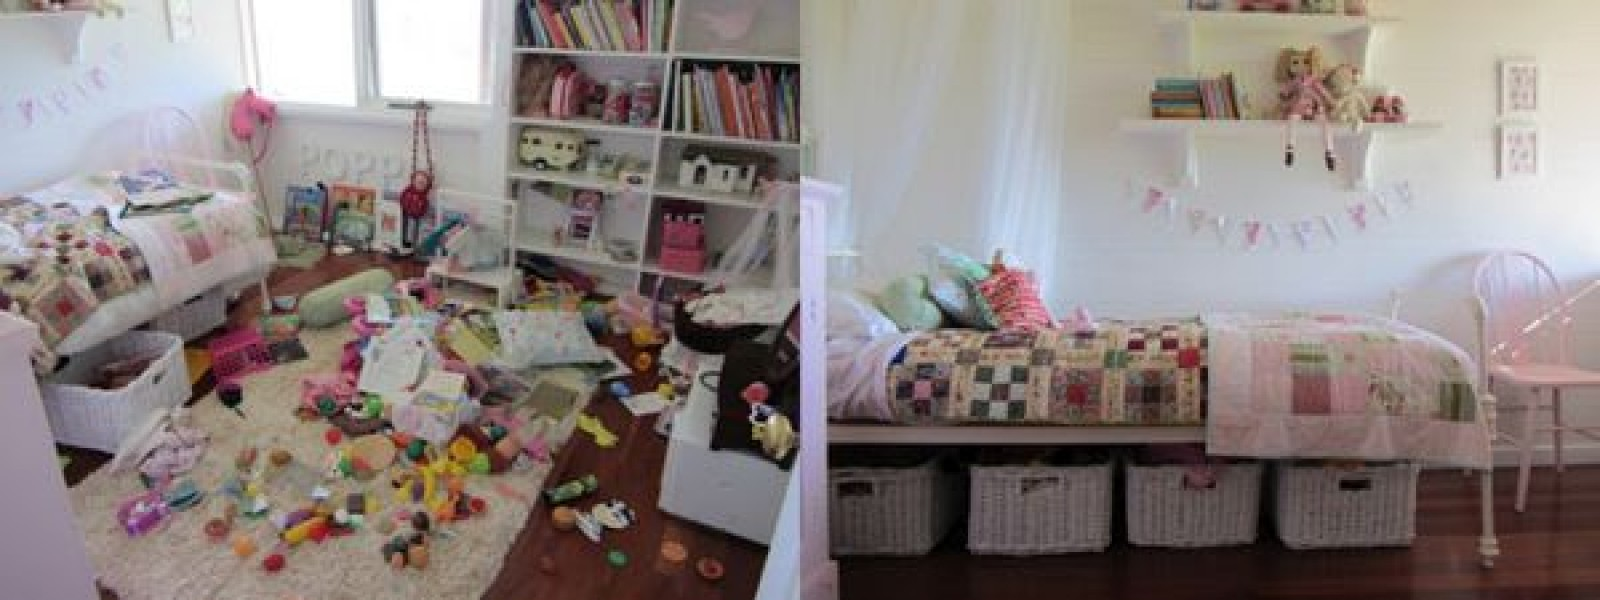 messy room1-side.jpg